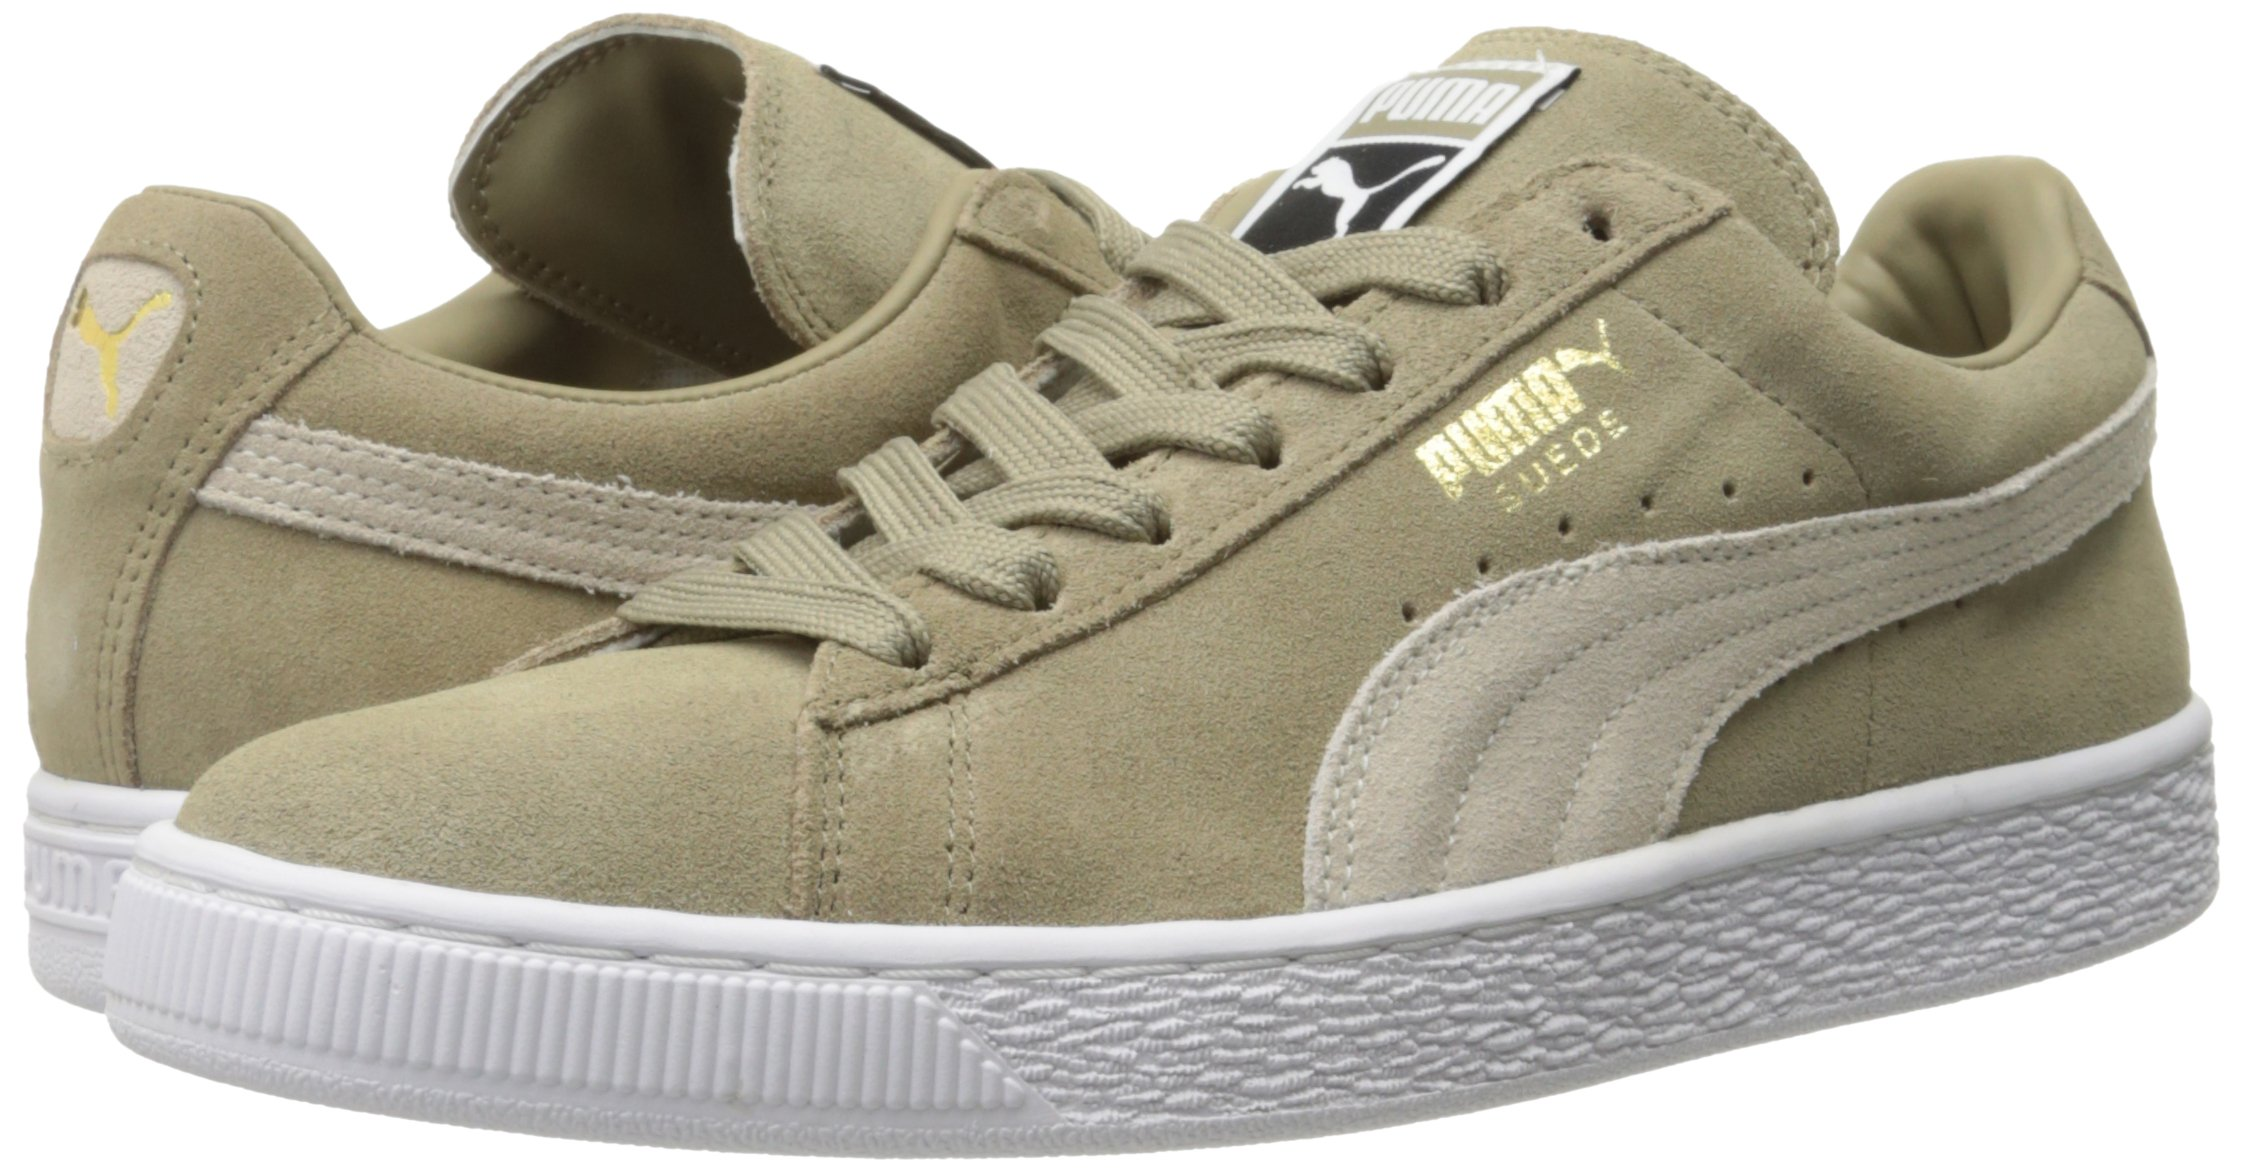 PUMA Men's Suede Classic + Fashion Sneaker - SUEDE CLASSIC +-M < Fashion  Sneakers < Clothing, Shoes & Jewelry - TIBS